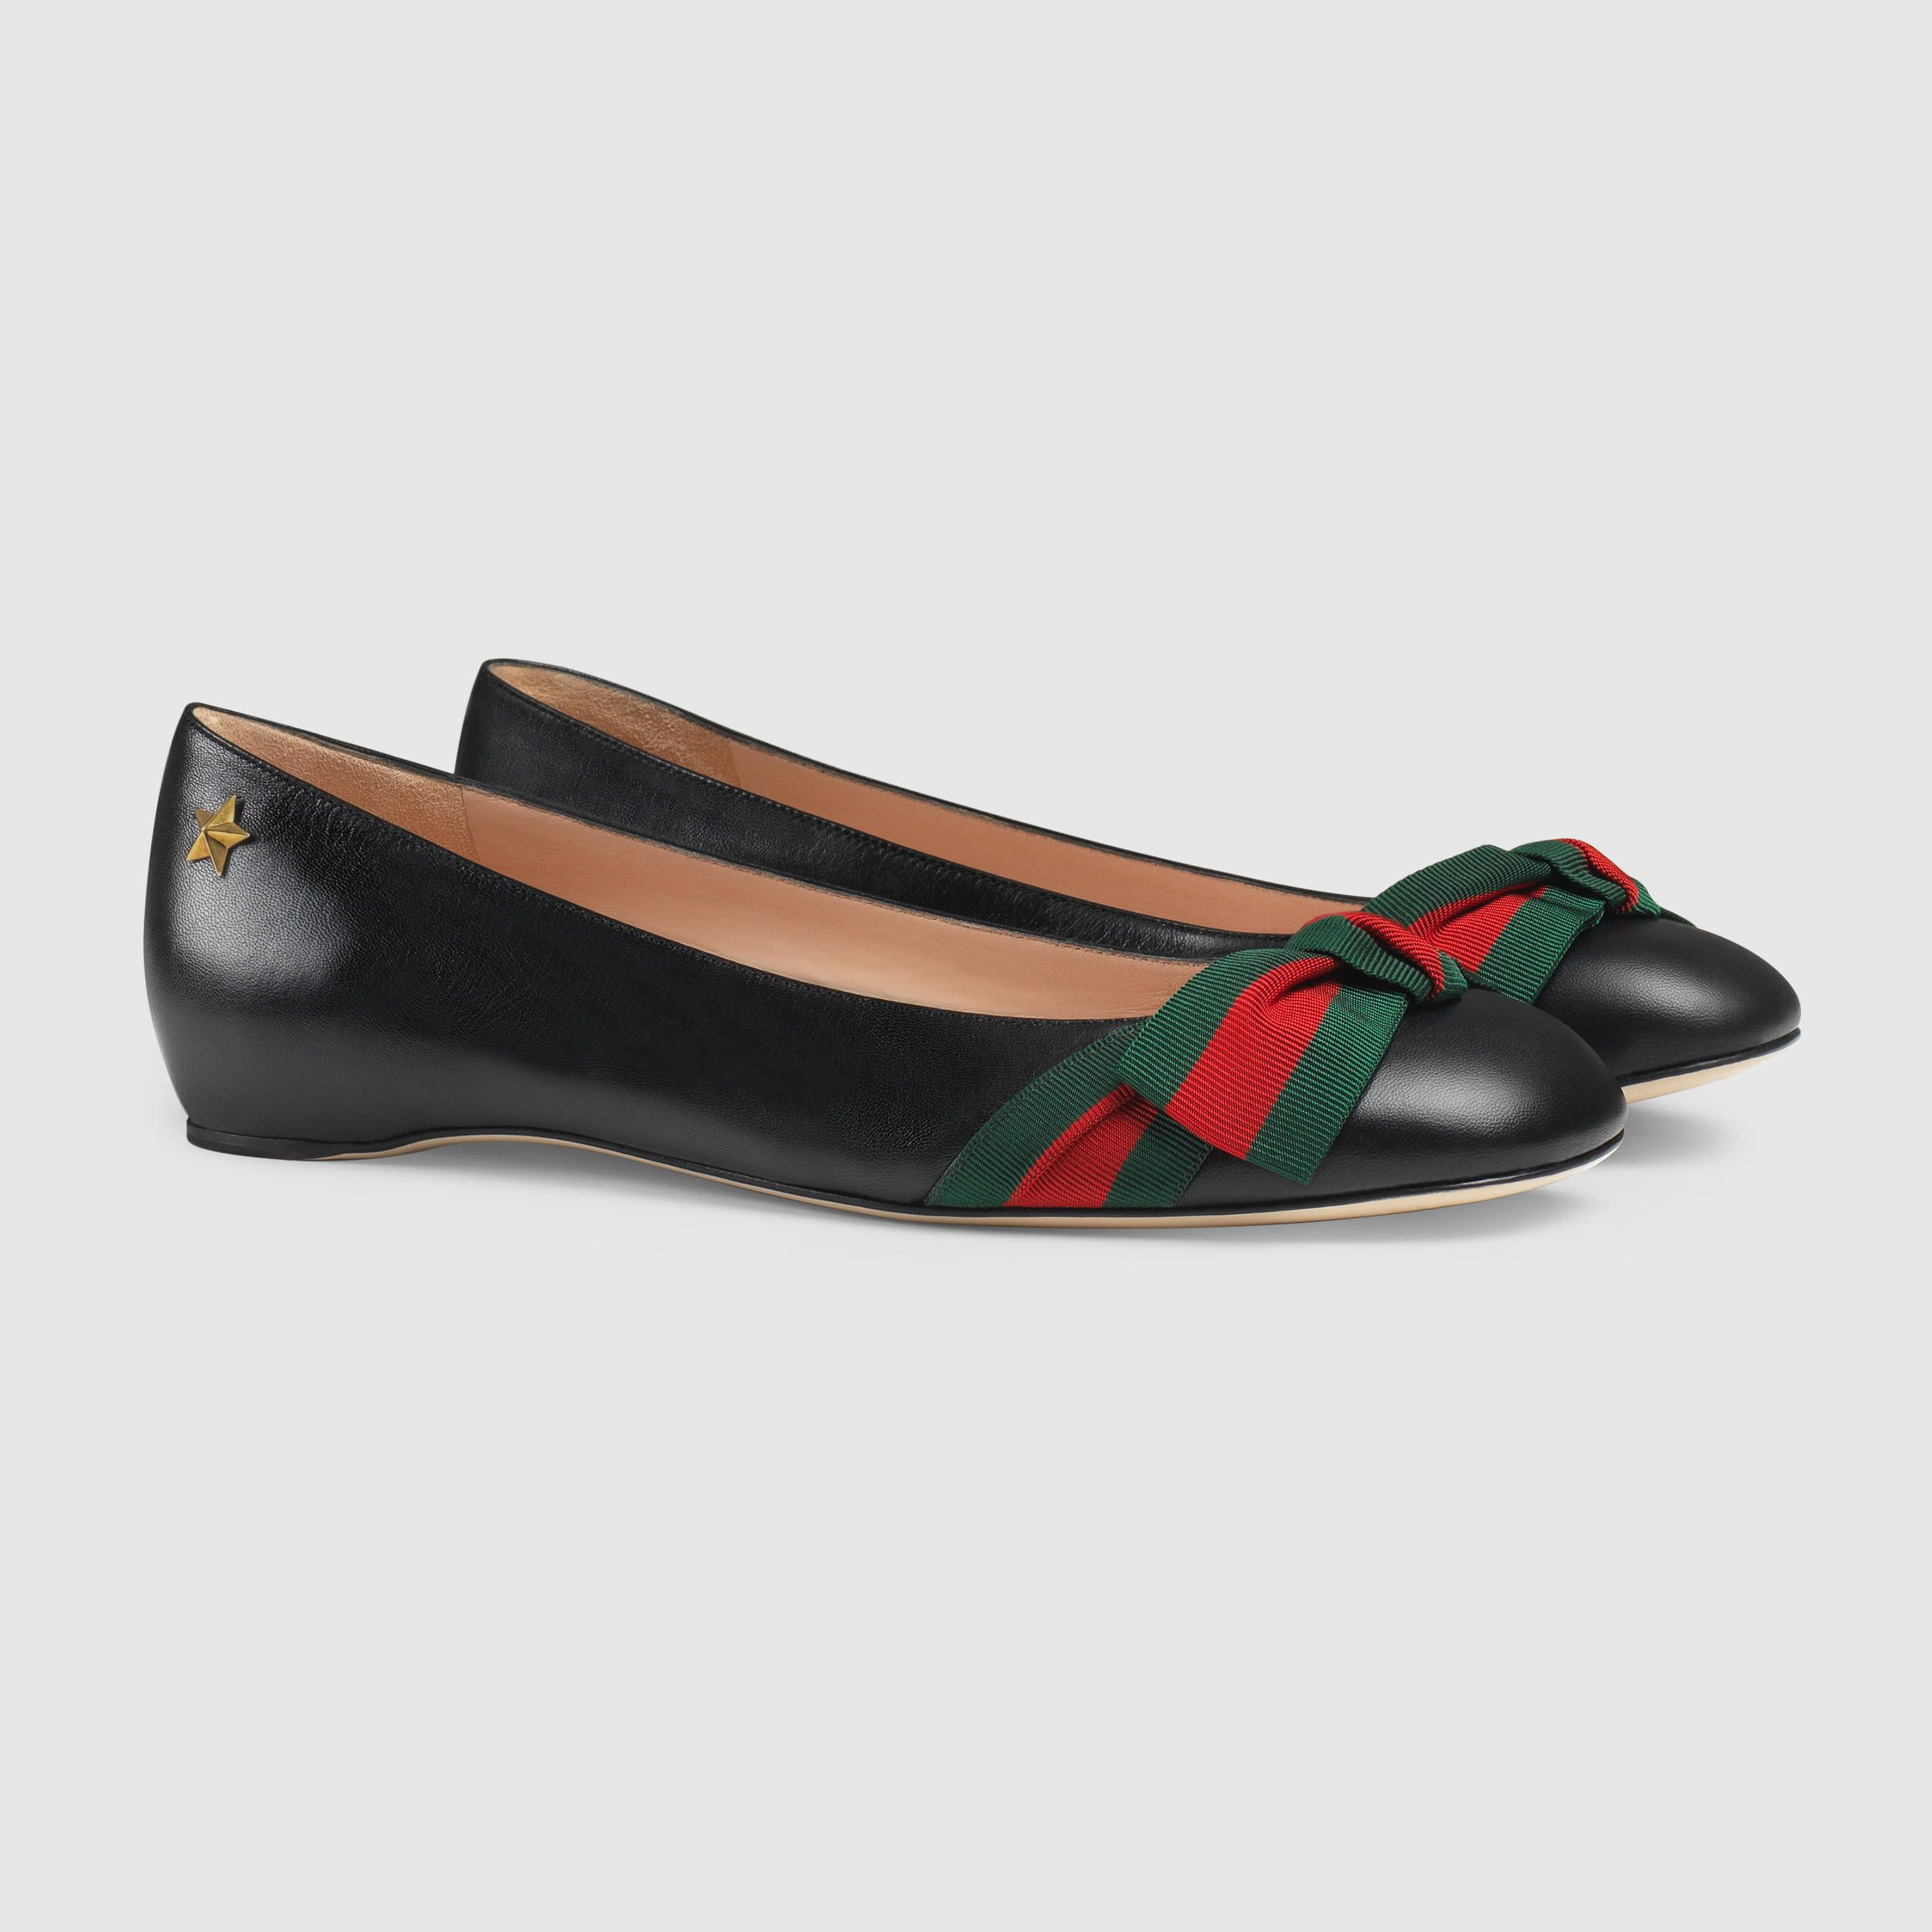 f40cd3589 Gucci Women - Aline leather flat - 432045CQXS01060 | Shoes ...